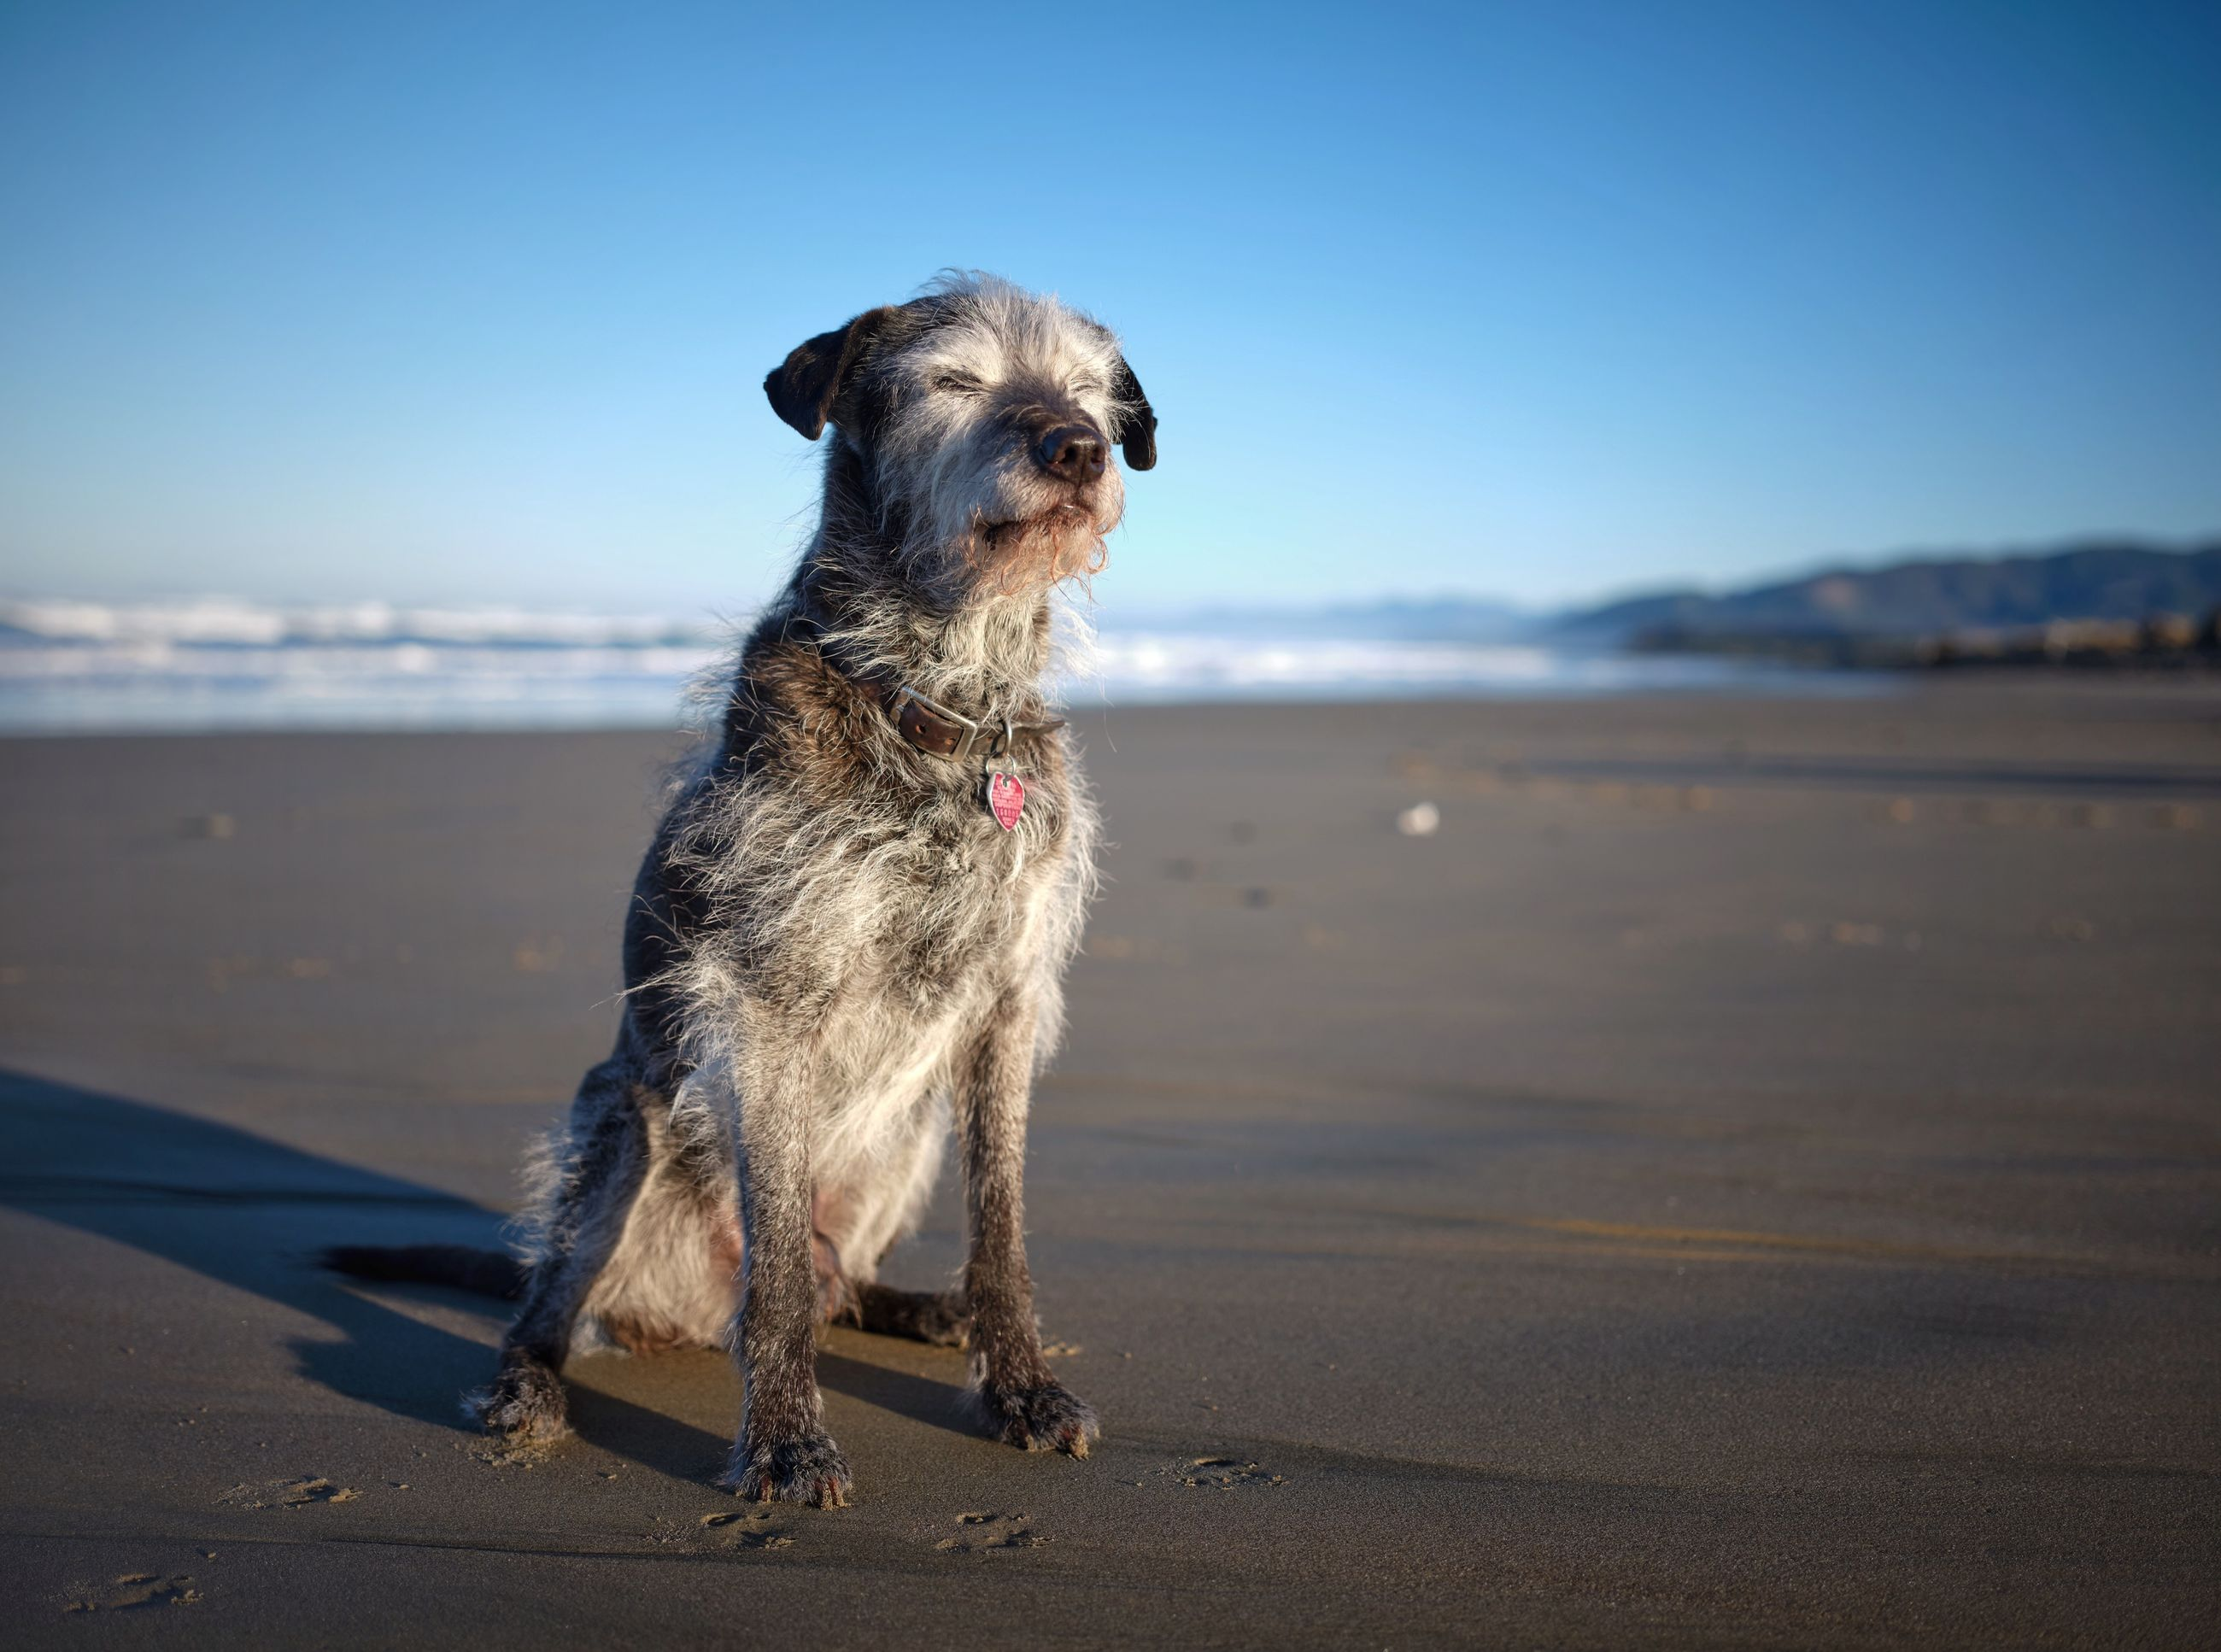 one animal, dog, mammal, animal themes, canine, animal, domestic, domestic animals, pets, land, beach, vertebrate, sky, sand, sea, nature, sunlight, full length, looking away, no people, small